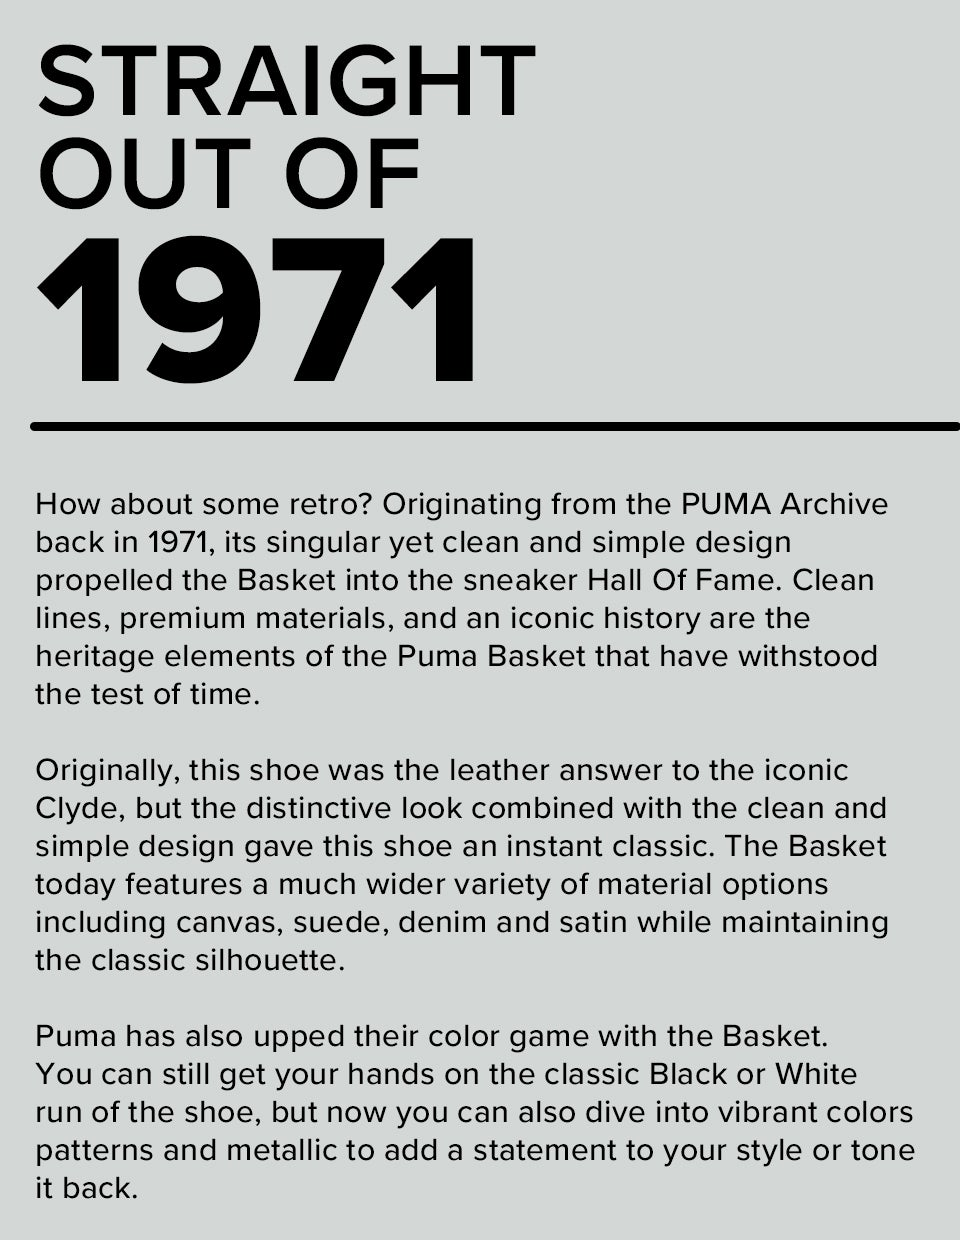 Straight Out of 1971 | How about some retro? Originating from the PUMA Archive back in 1971, its singular yet clean and simple design propelled the Basket into the sneaker Hall Of Fame. Clean lines, premium materials, and an iconic history are the heritage elements of the Puma Basket that have withstood the test of time. Originally, this shoe was the leather answer to the iconic Clyde, but the distinctive look combined with the clean and simple design gave this shoe an instant classic. The Basket today features a much wider variety of material options including canvas, suede, denim and satin while maintaining the classic silhouette. Puma has also upped their color game with the Basket. You can still get your hands on the classic Black or White run of the shoe, but now you can also dive into vibrant colors, patterns and metallic to add a statement to your style or tone it back.